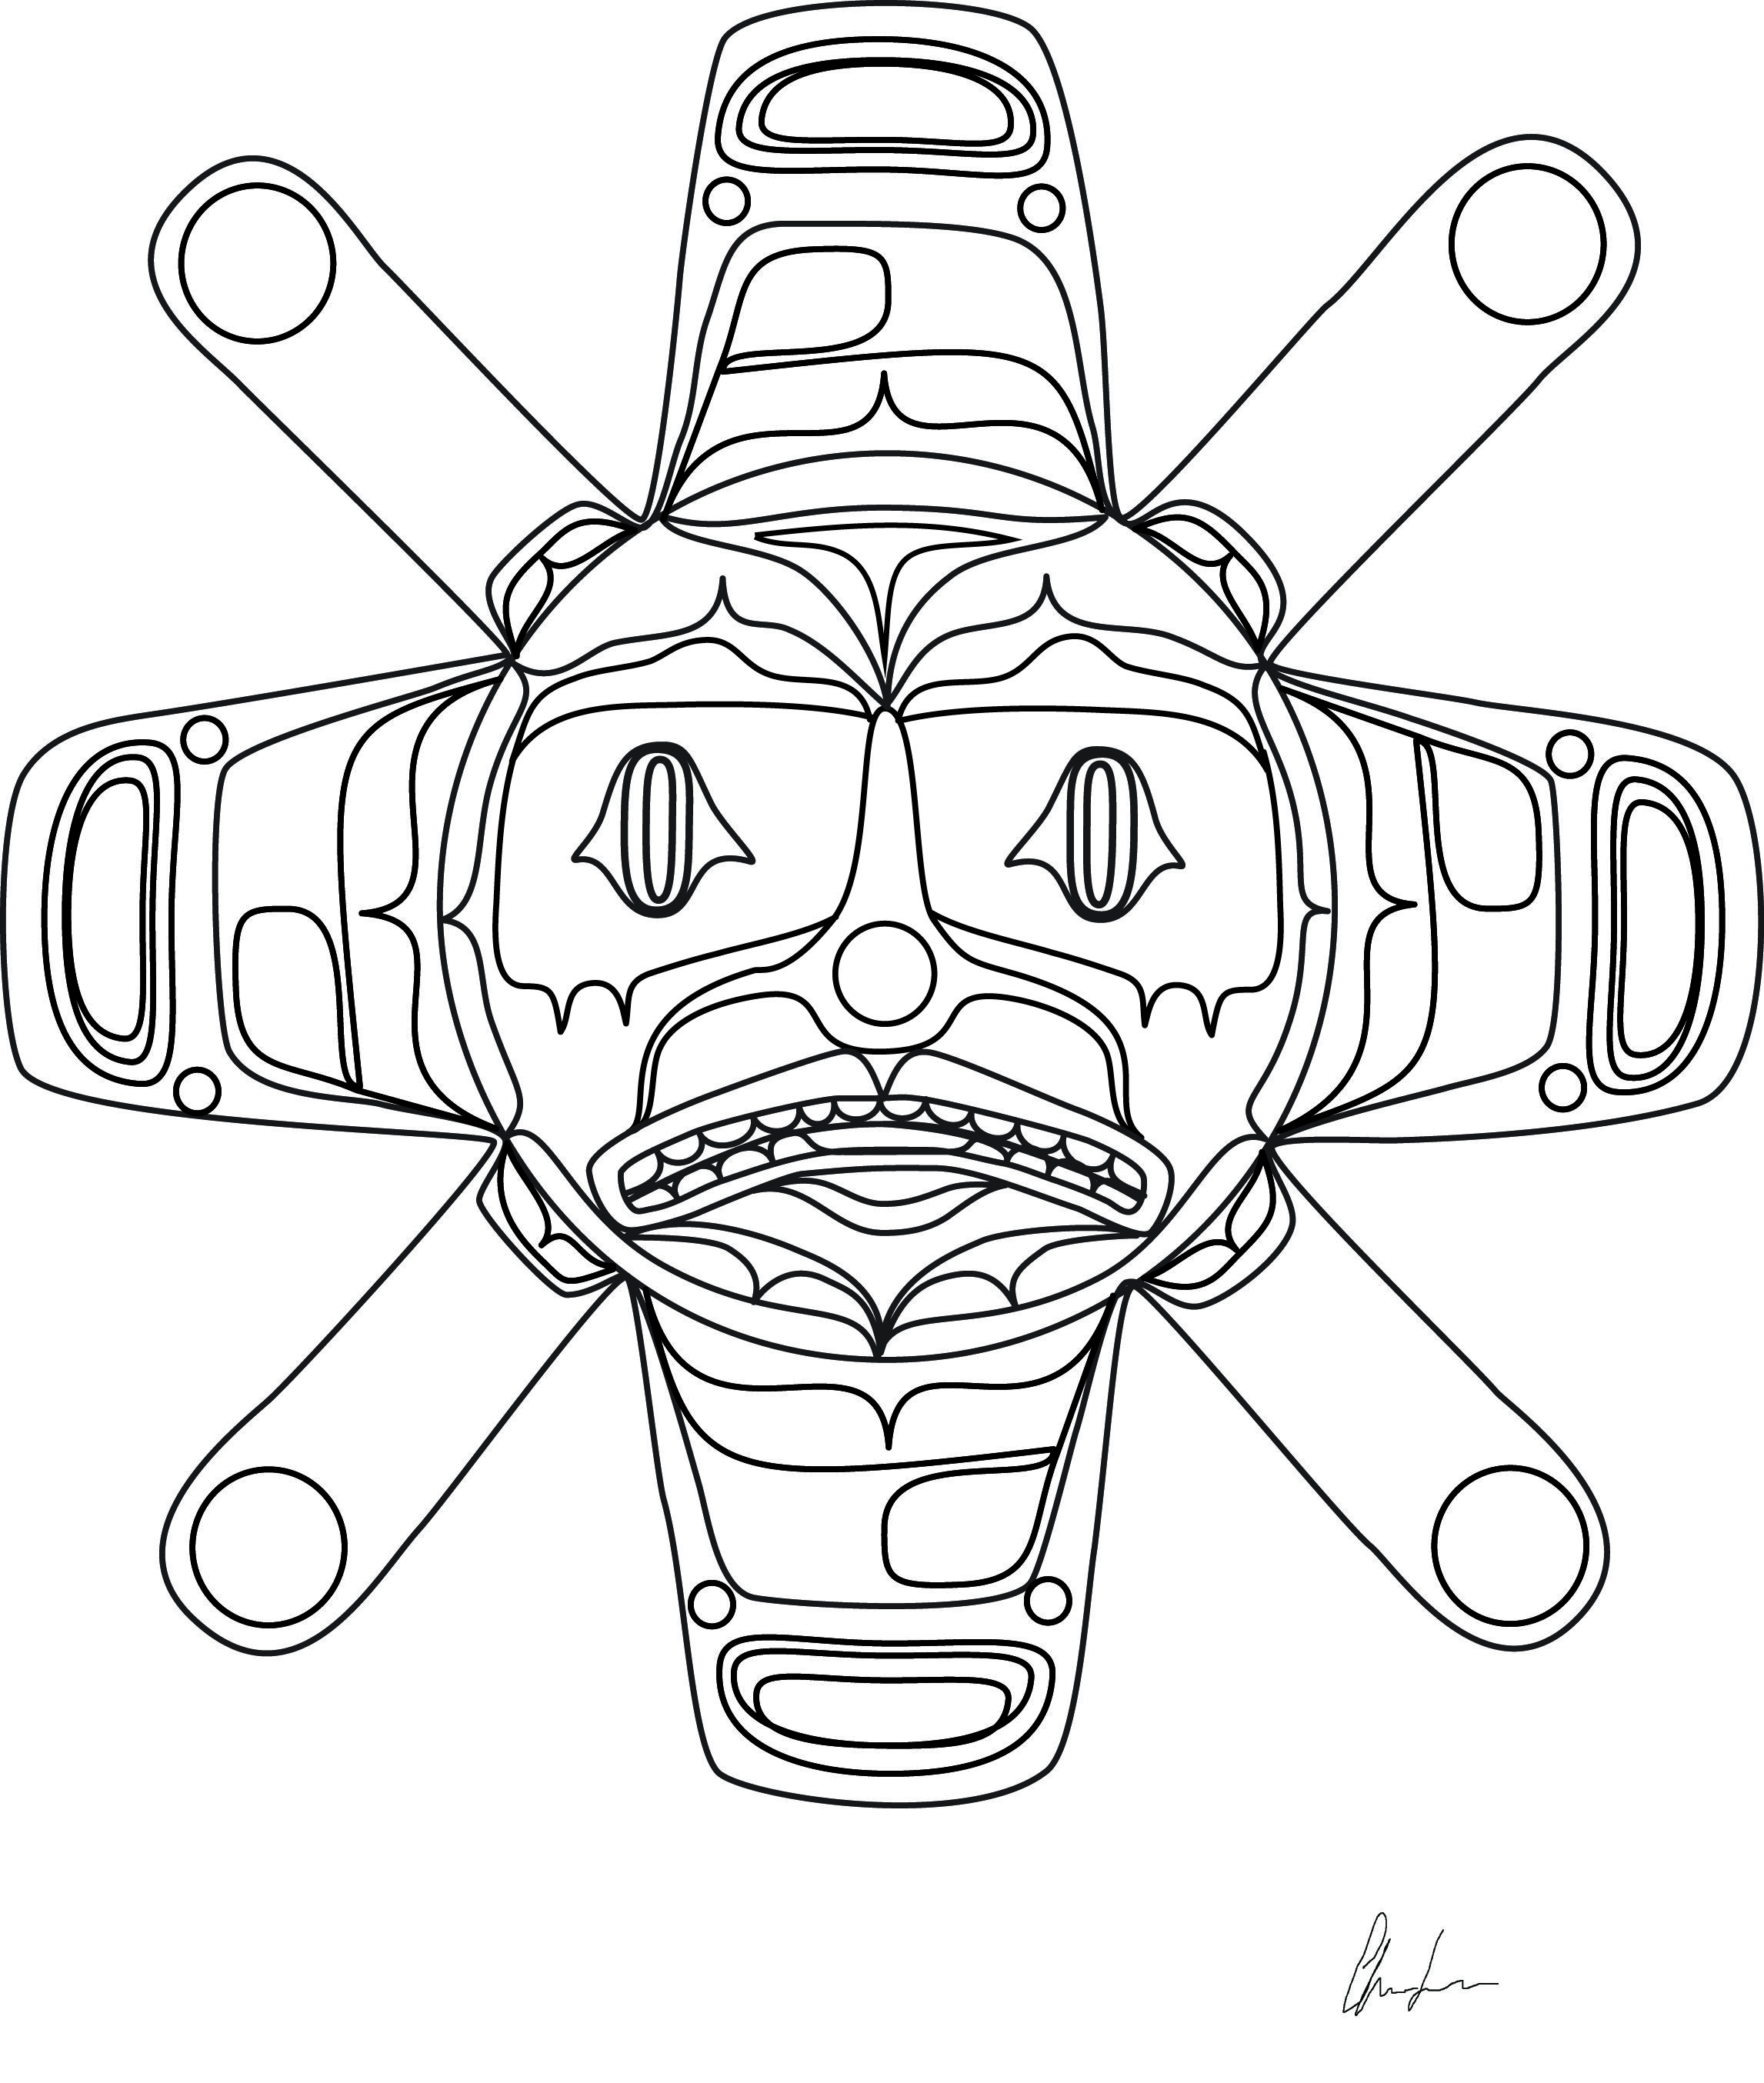 2293x2708 Summer Sun Coloring Book Design Northwest Coast First Nations